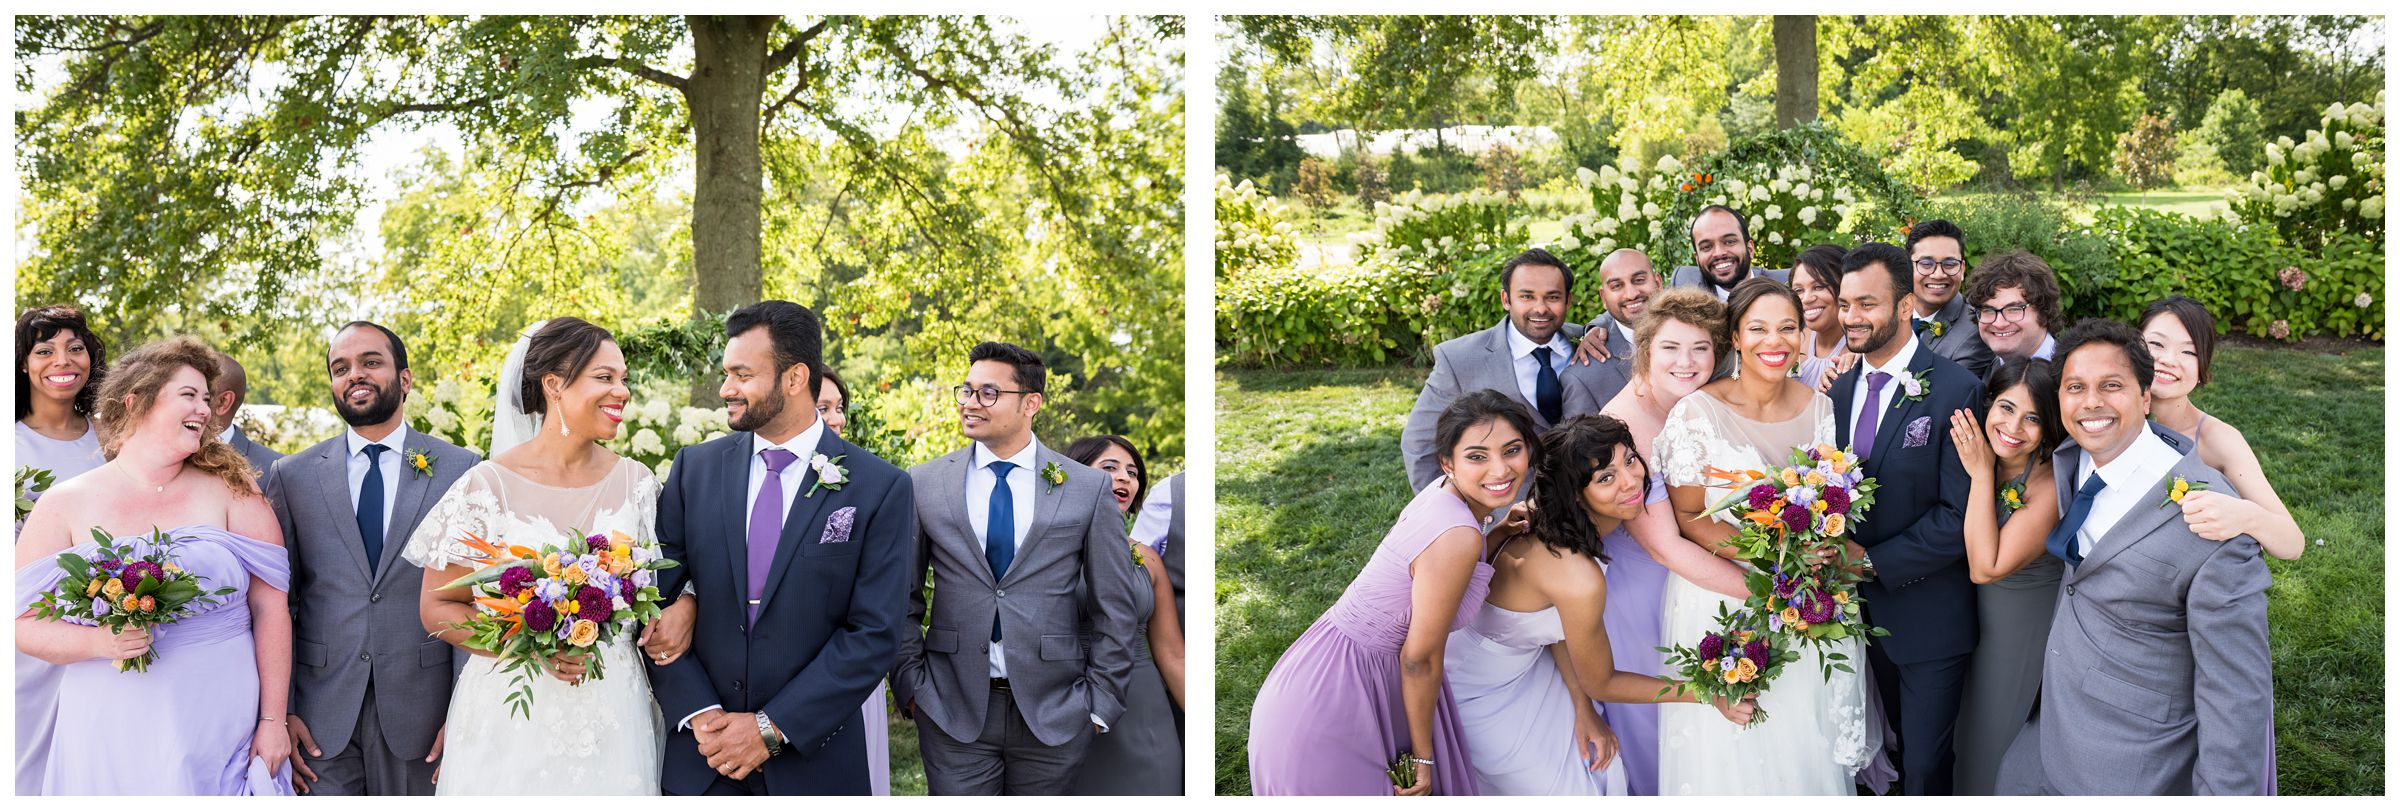 Indian and African American co-ed mixed gender wedding party at Jorgensen Farms